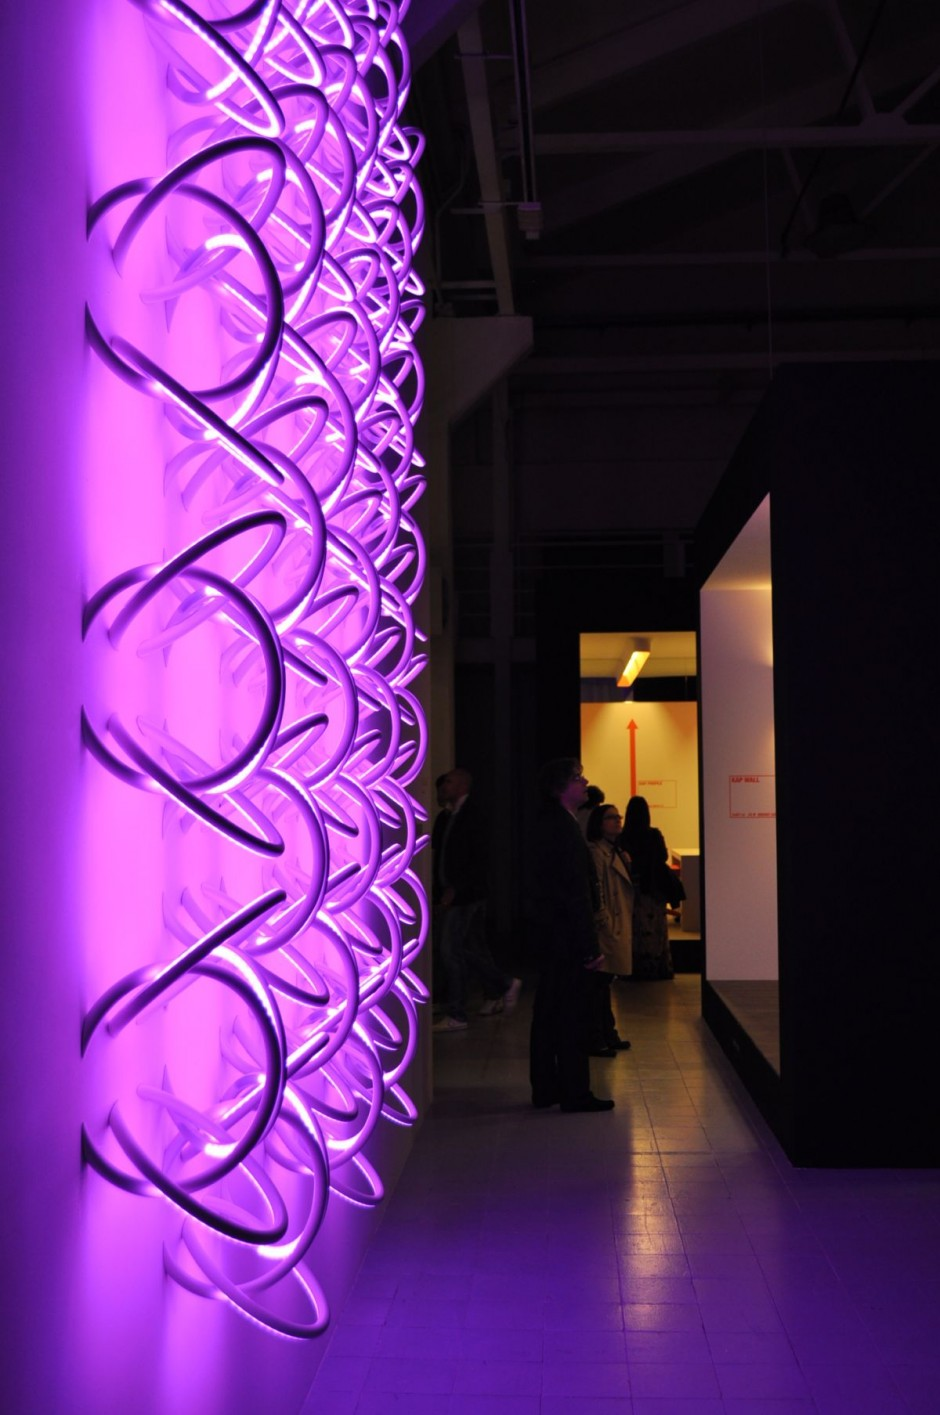 Wall Piercing – Soft Architecture Lighting